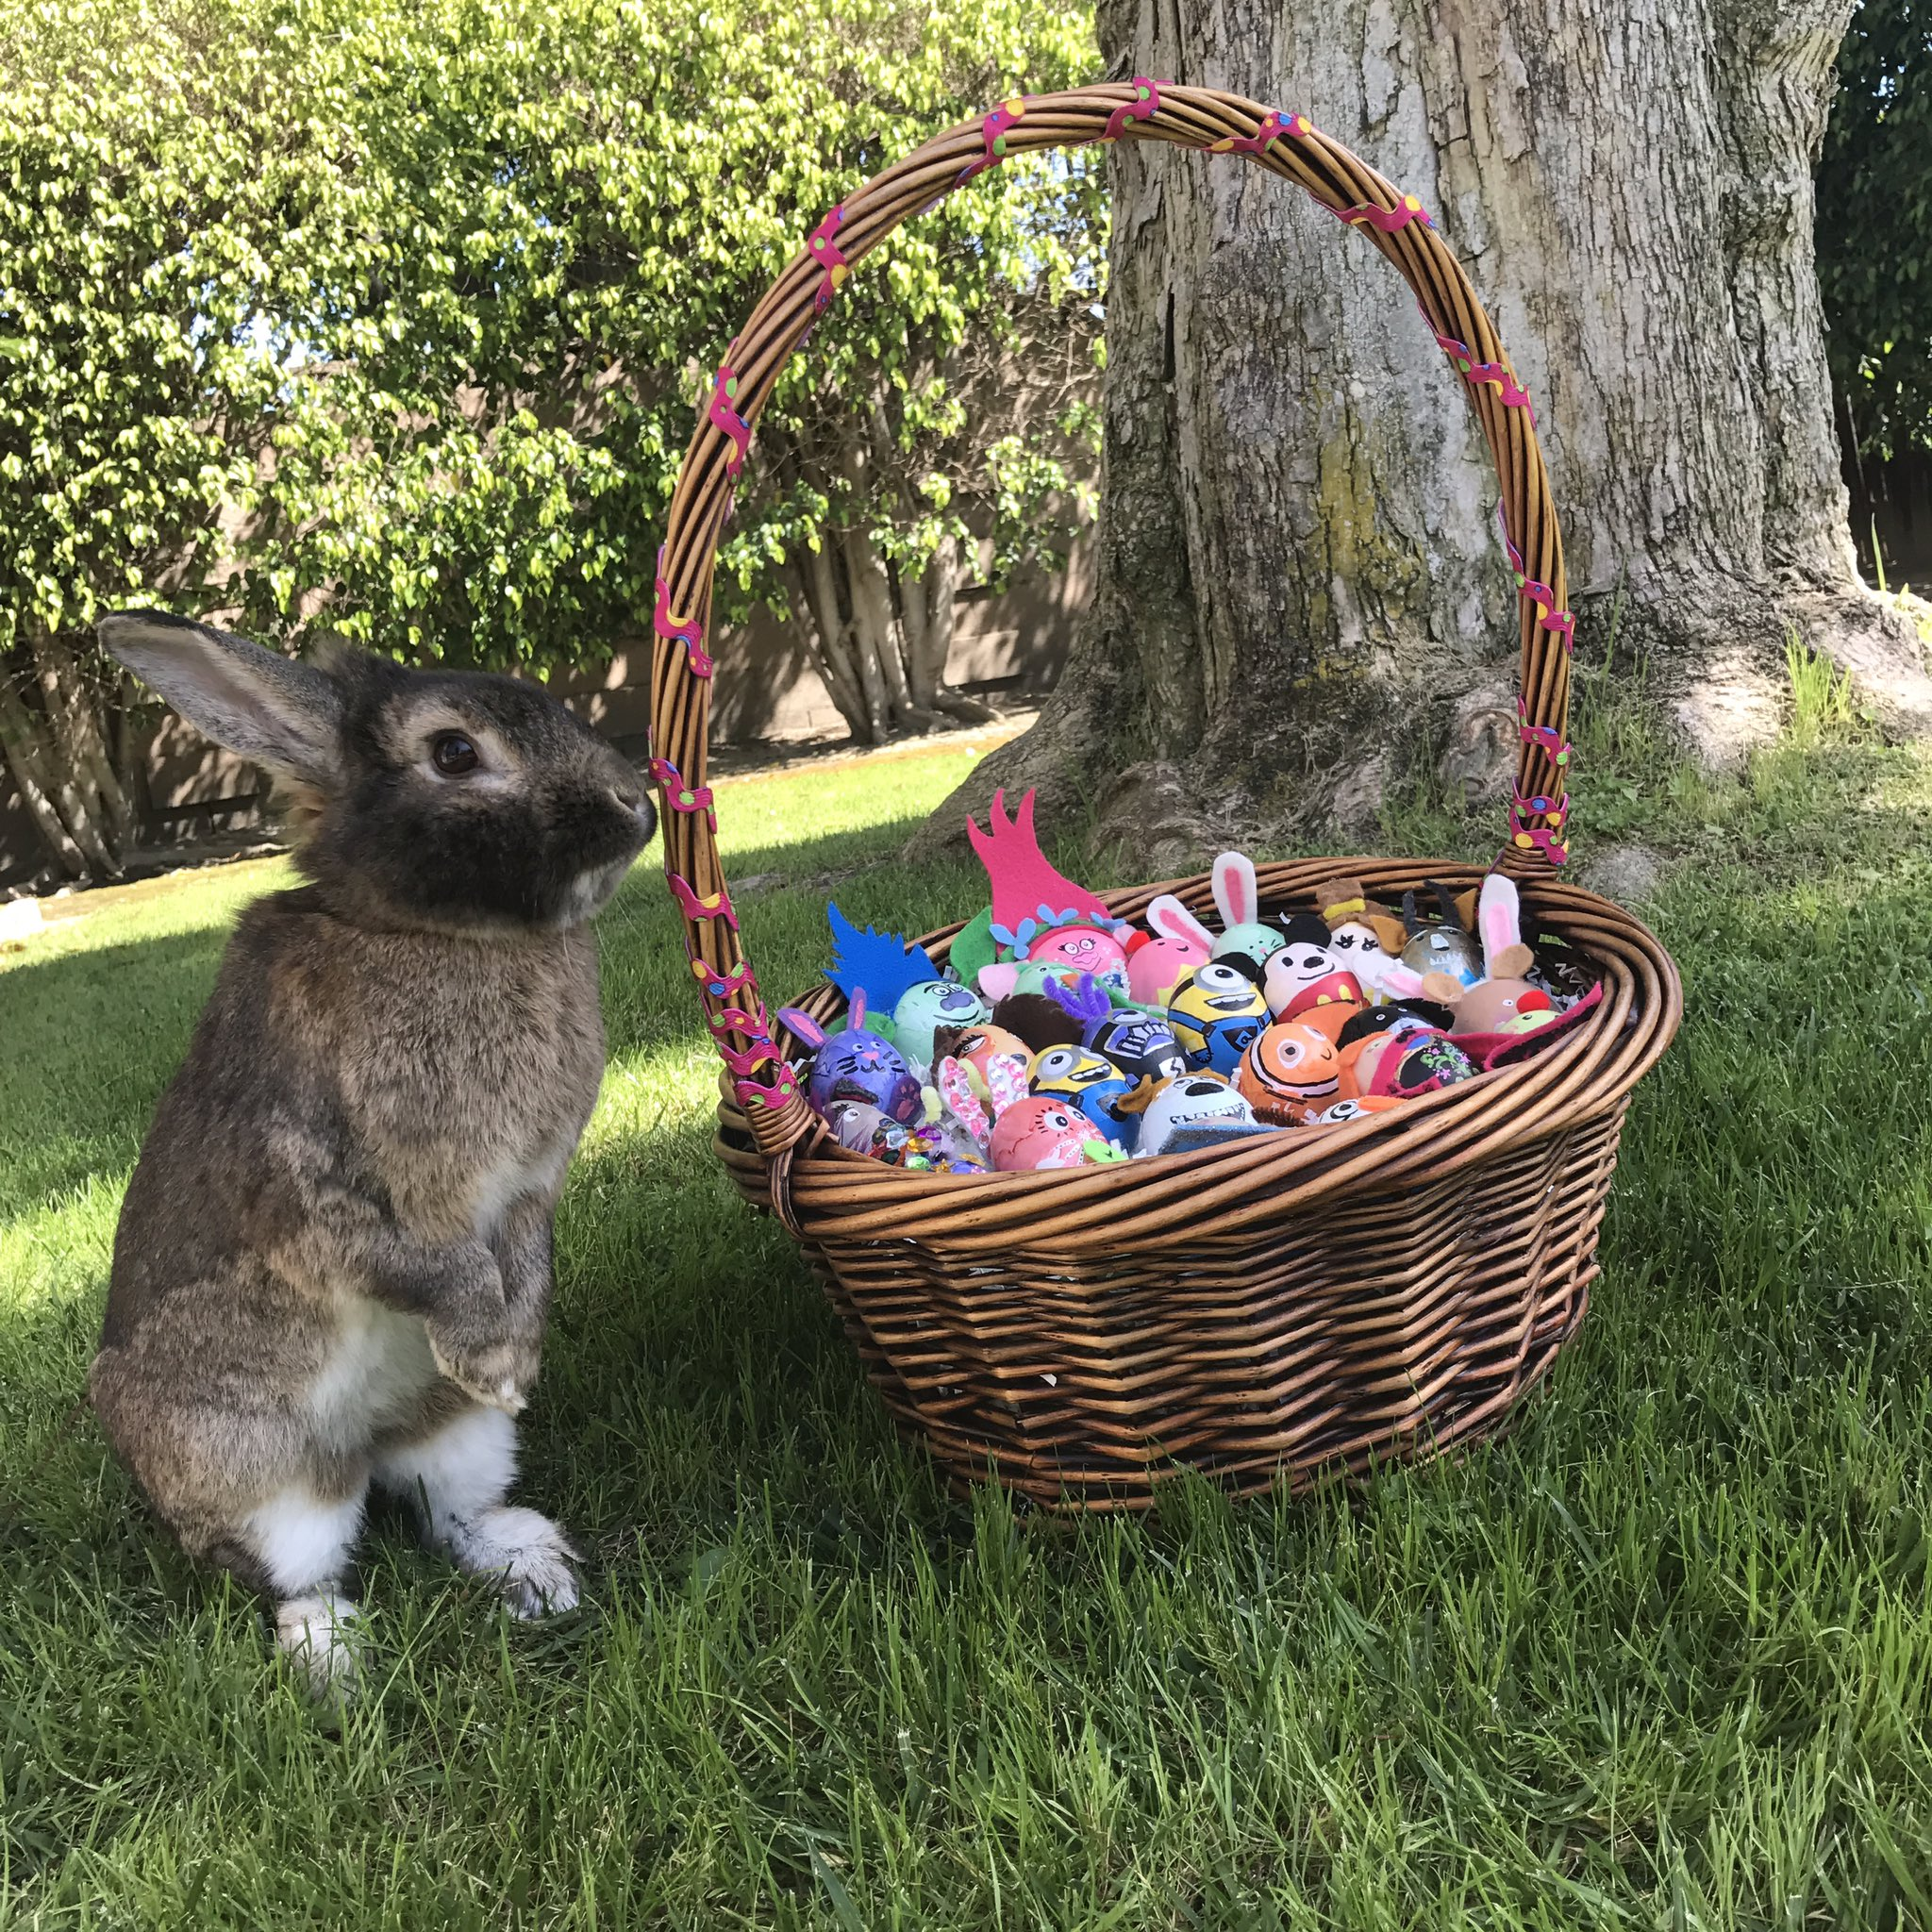 Happy Easter from my rabbit, Humphrey and me! https://t.co/xUNtNWhVIG